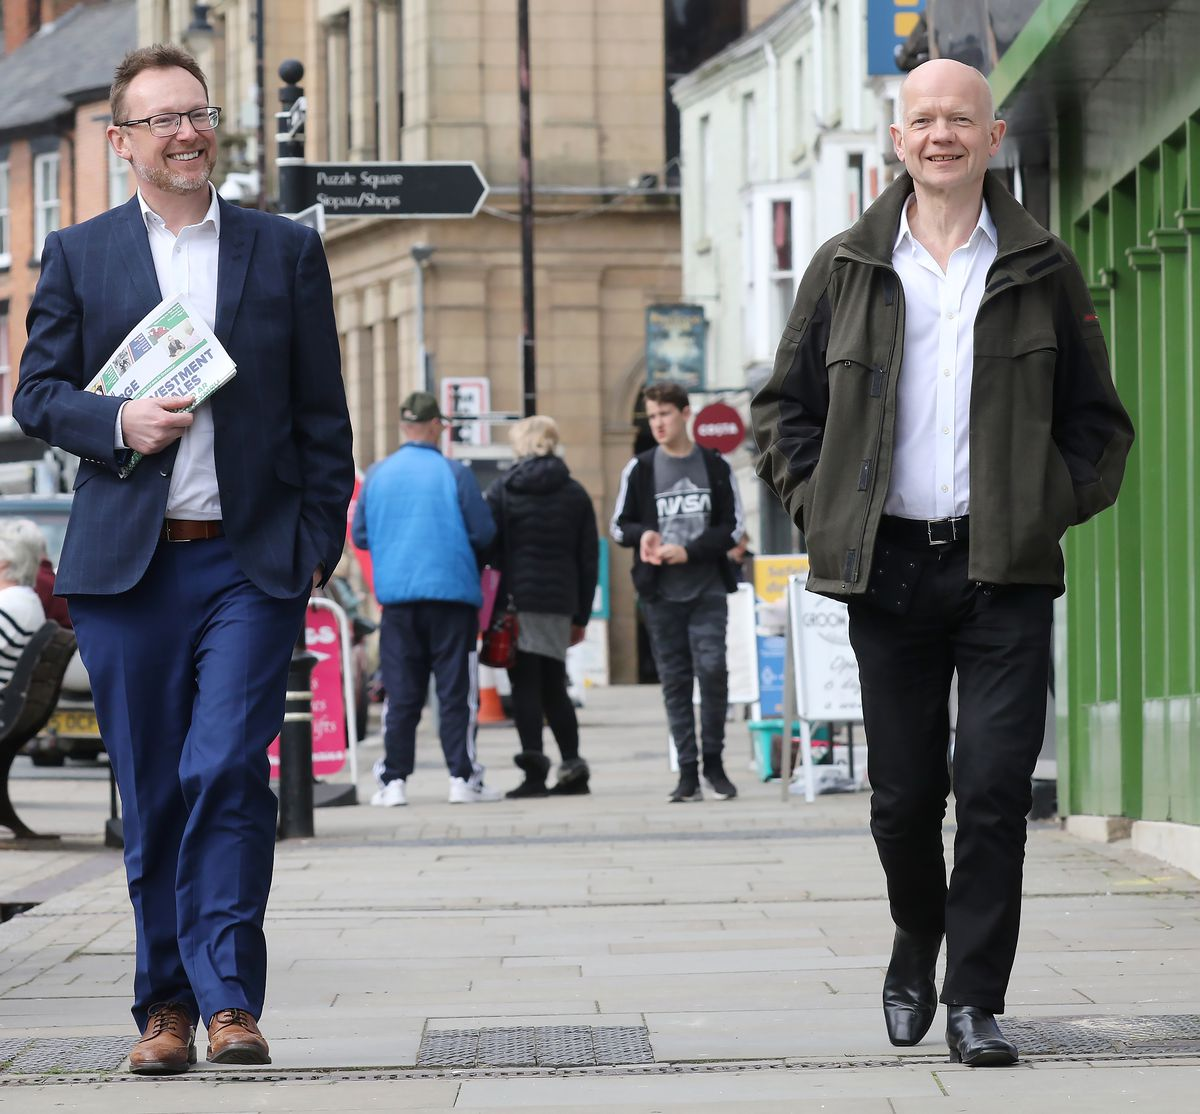 Russell George was joined by William Hague during the campaign